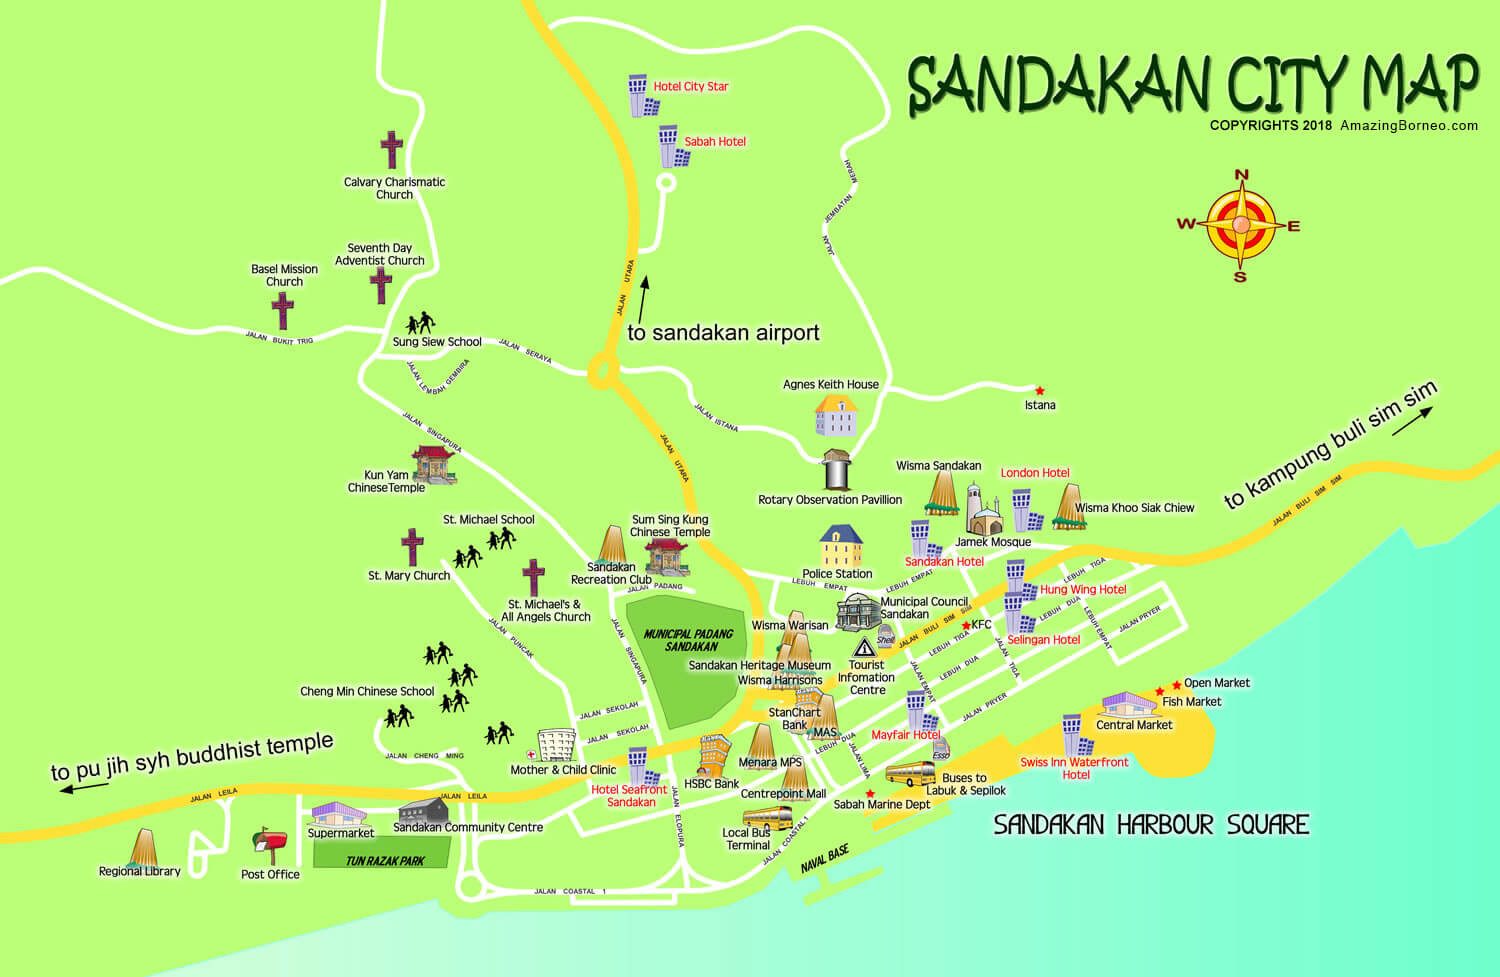 Sandakan City Map - Amazing Borneo